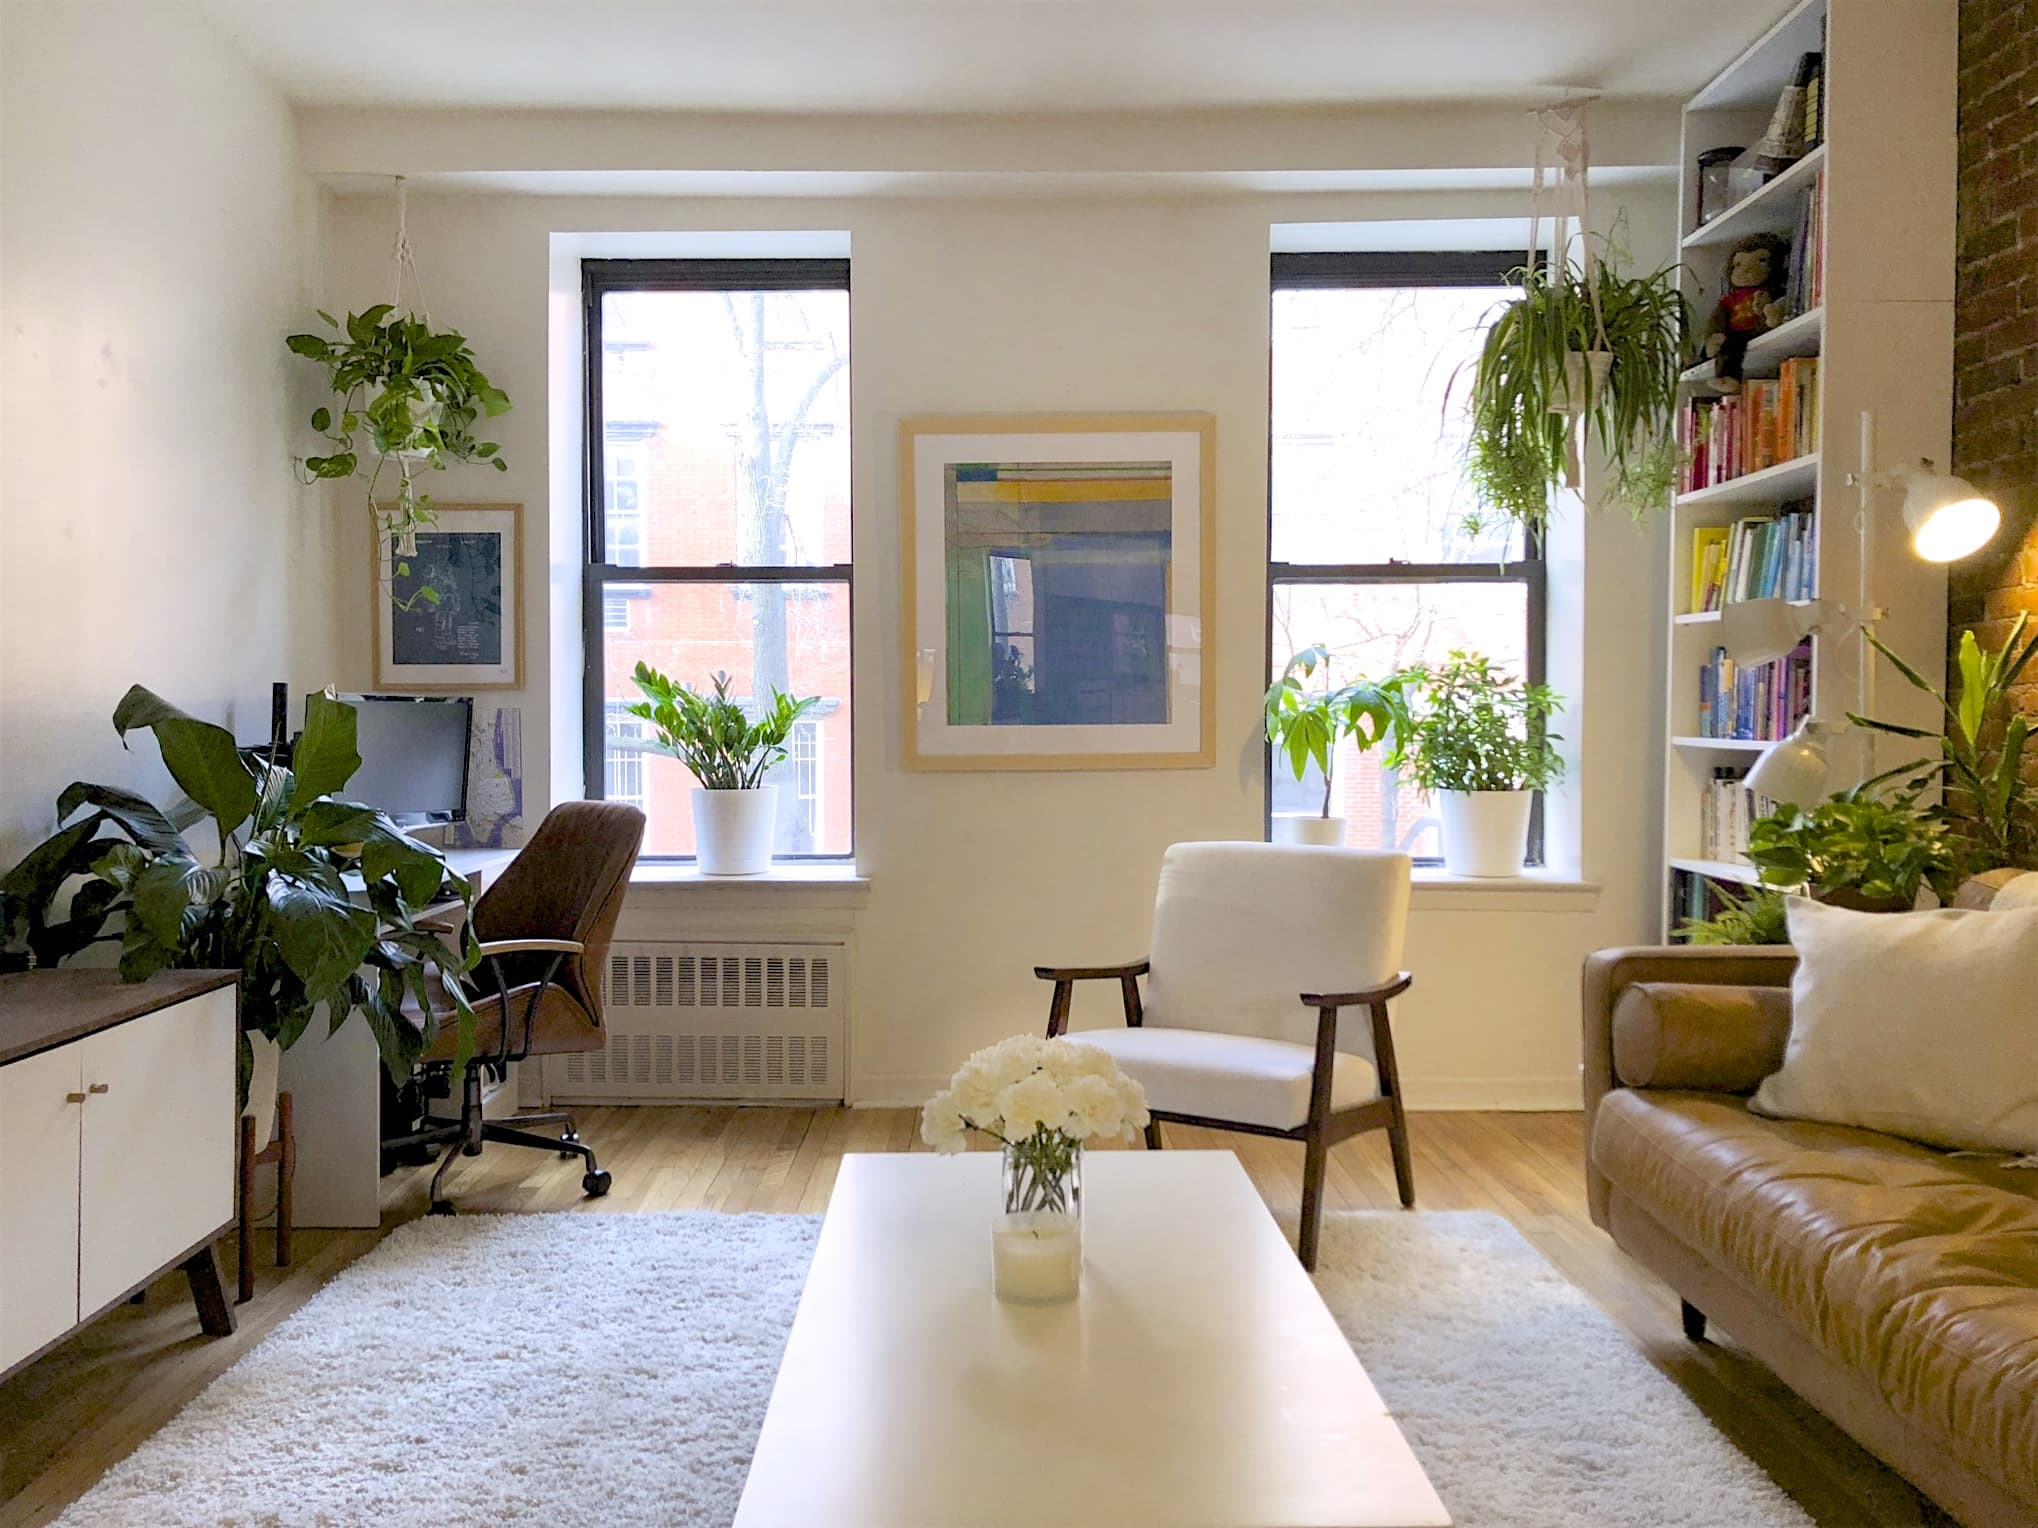 A Small NYC Apartment Has the Cutest Simple Plant Display Above the Bed